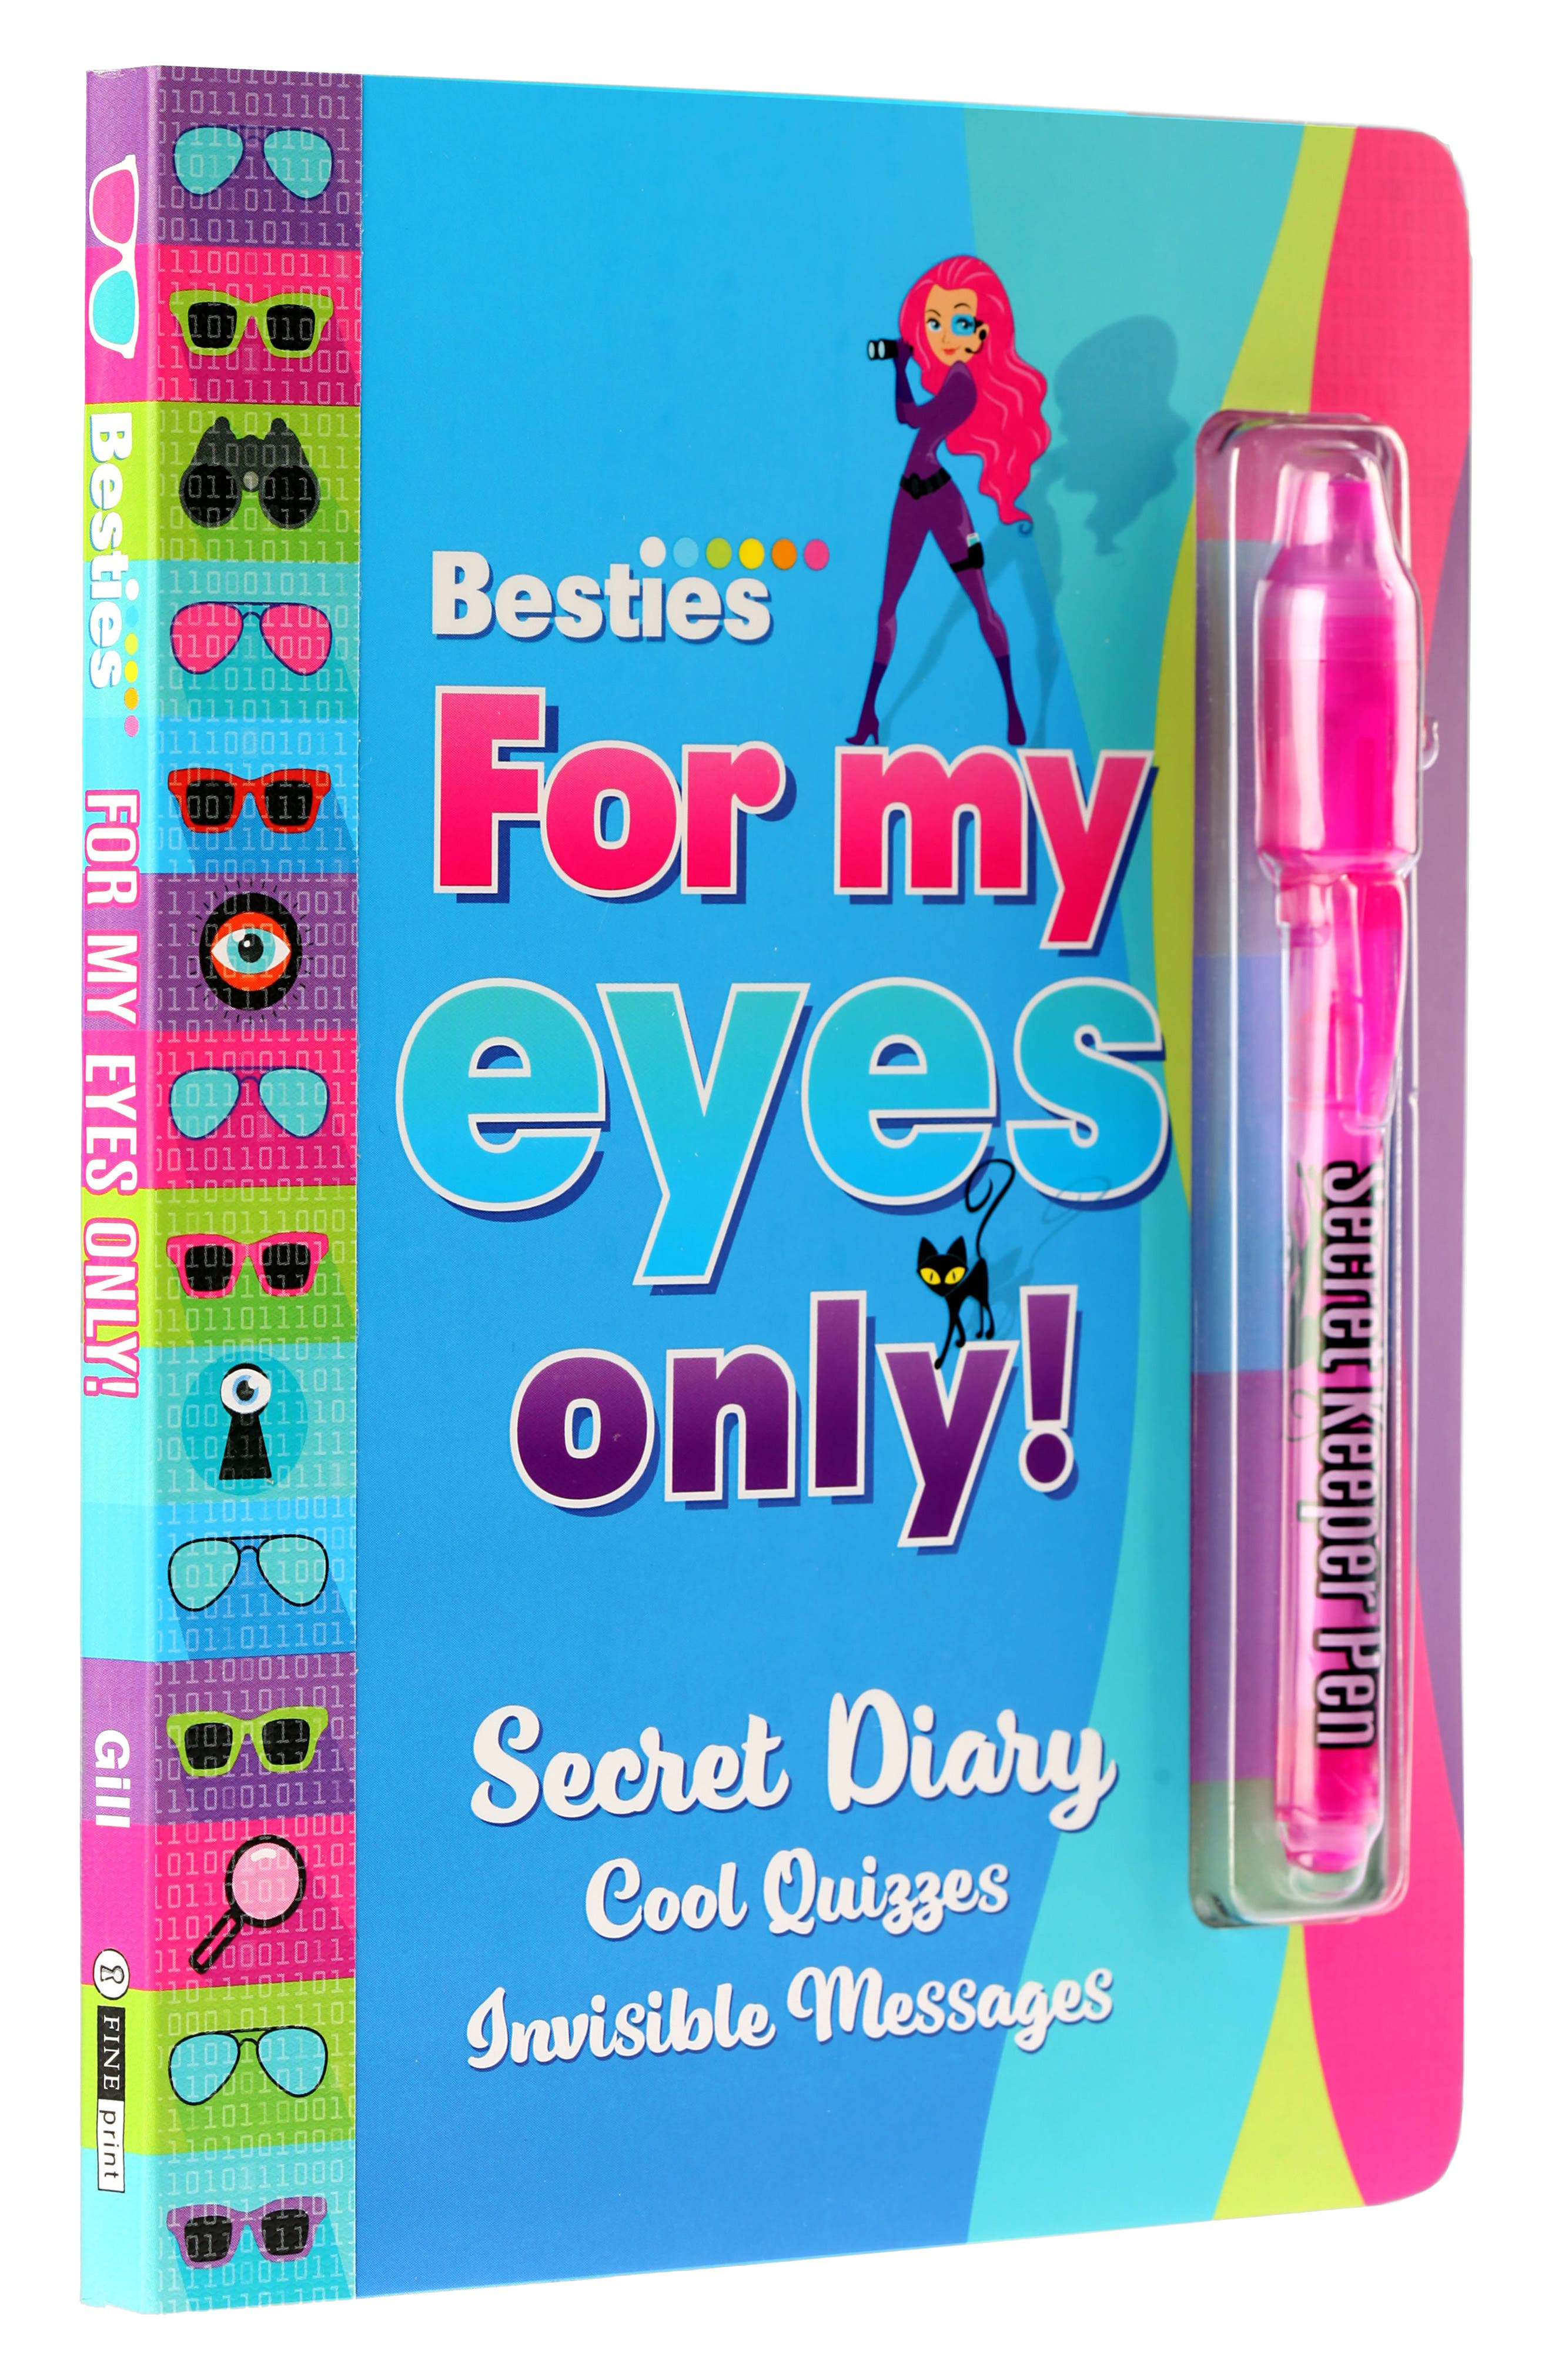 Fine Print Besties For My Eyes Only Activity Book